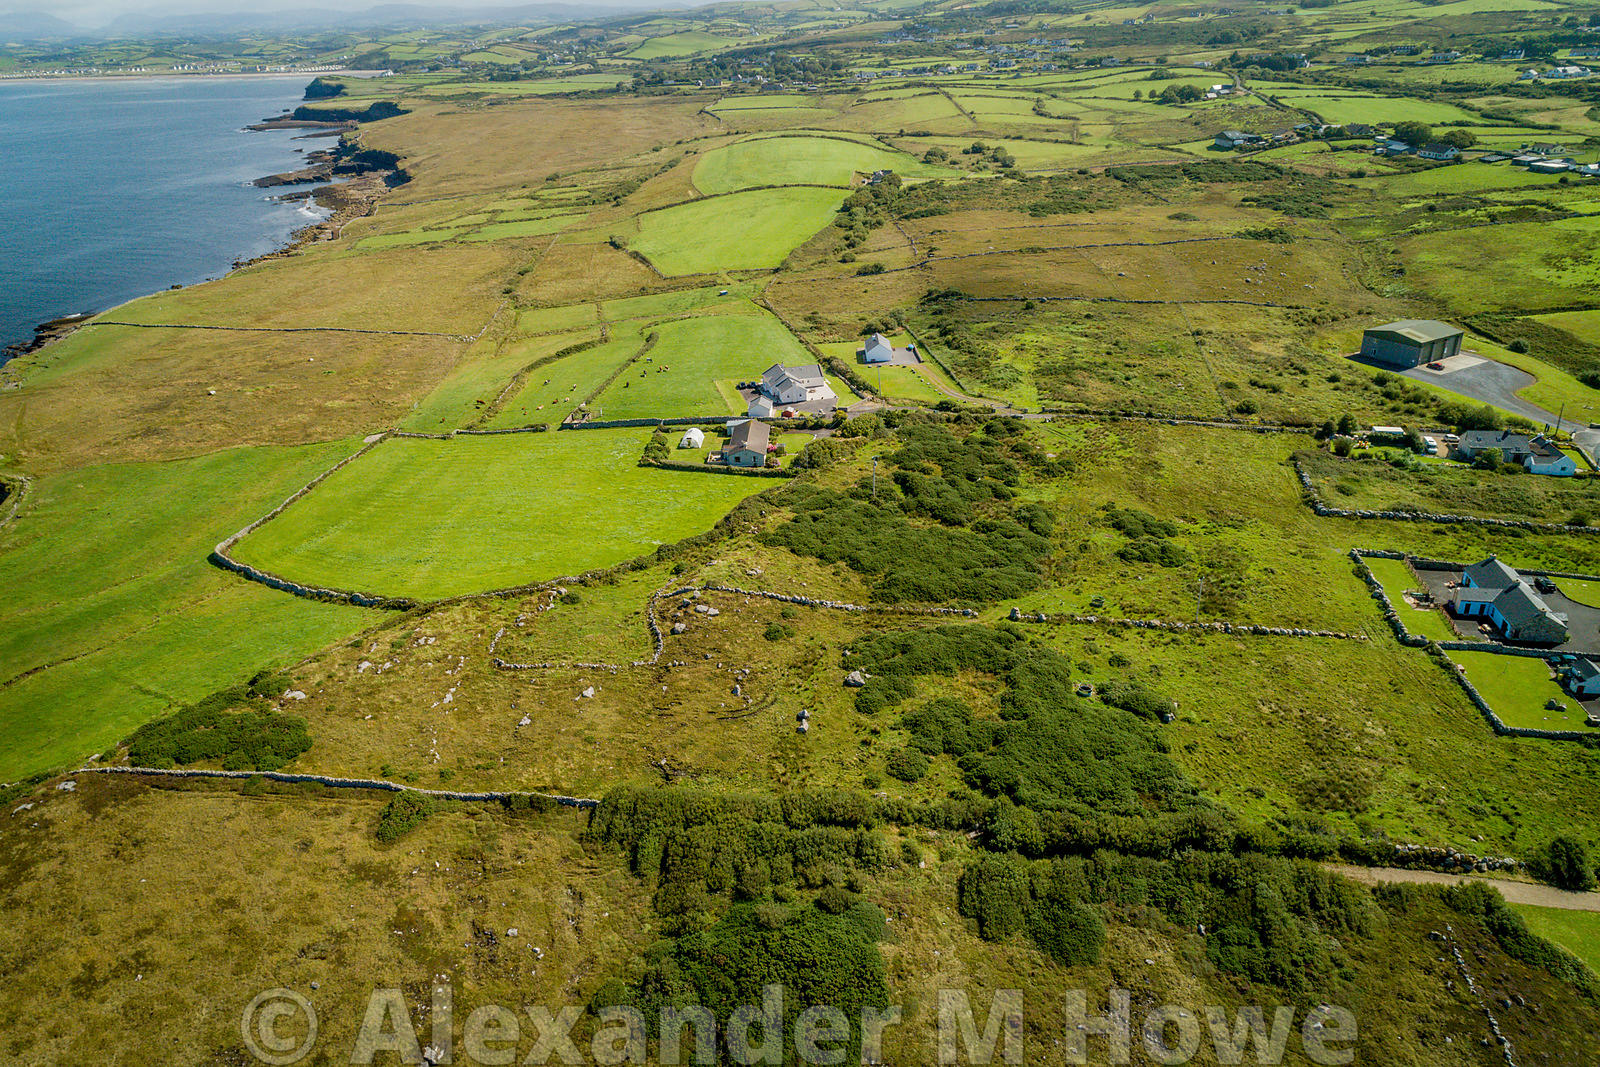 Aerial view of farmland surrounding Creevy Pier, Co Donegal with the Mediterranean blue sea of Donegal Bay